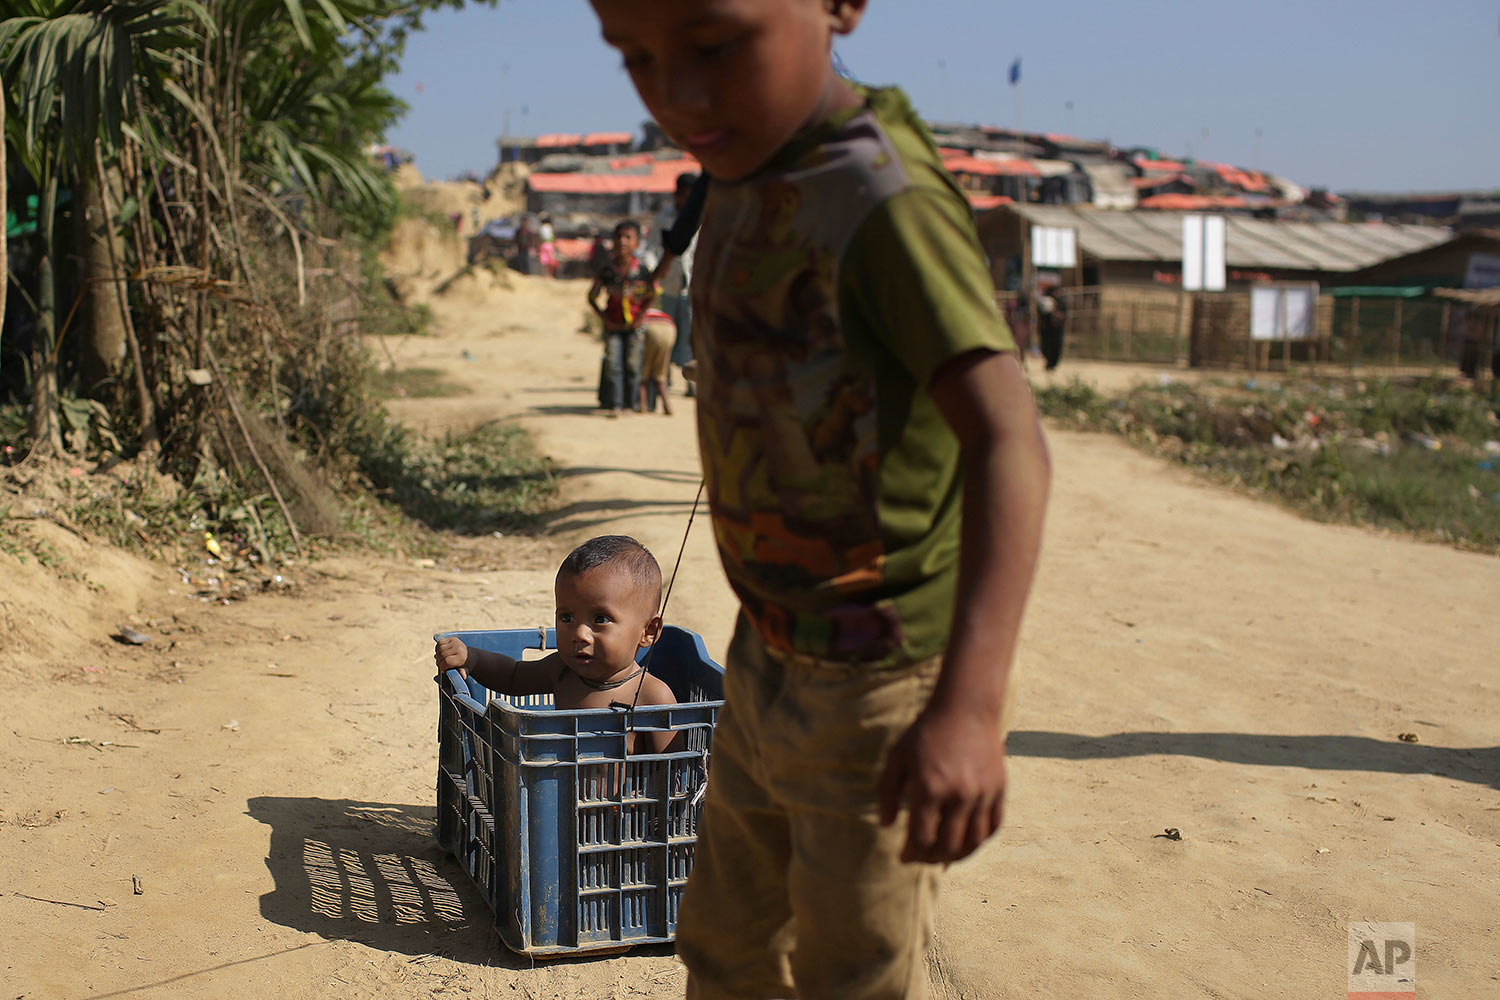 Rohingya Muslim children race make-shift carts made with plastic crates around Jamtoli refugee camp in Bangladesh on Monday, Nov. 27, 2017. Since late August, more than 620,000 Rohingya have fled Myanmar's Rakhine state into neighboring Bangladesh, where they are living in squalid refugee camps. (AP Photo/Wong Maye-E)